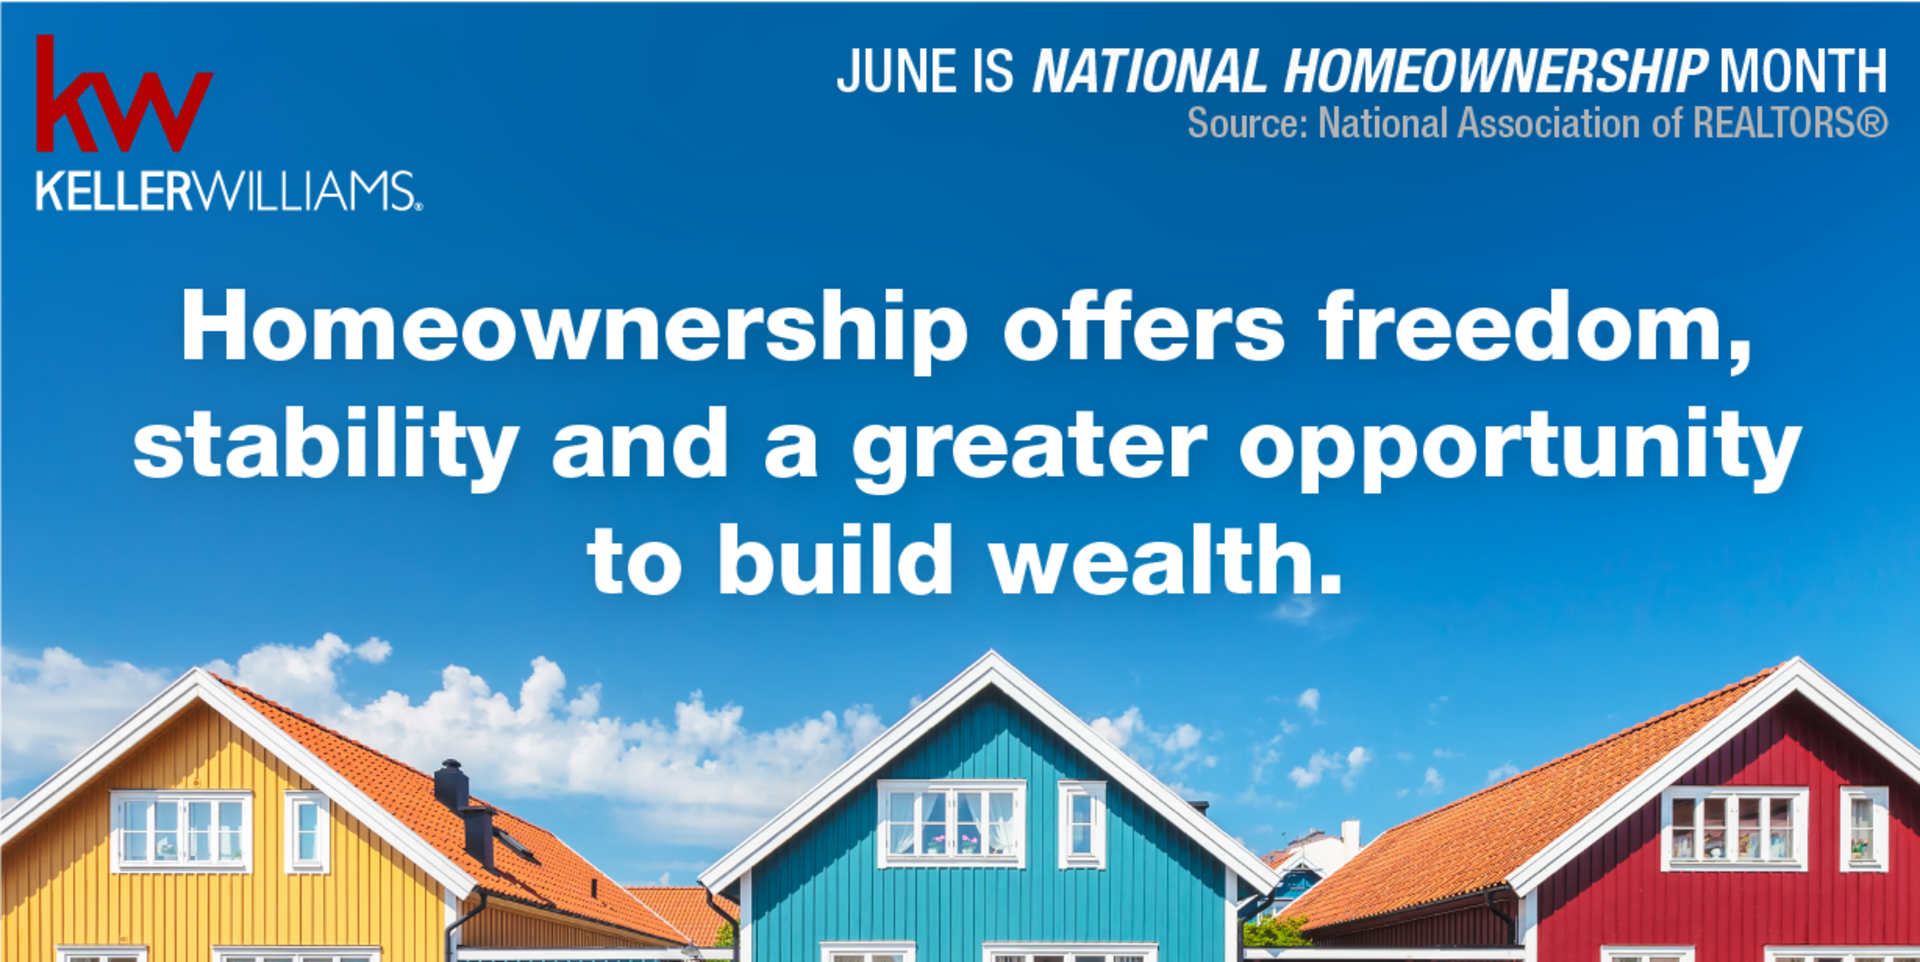 June is National Homeowner Month!